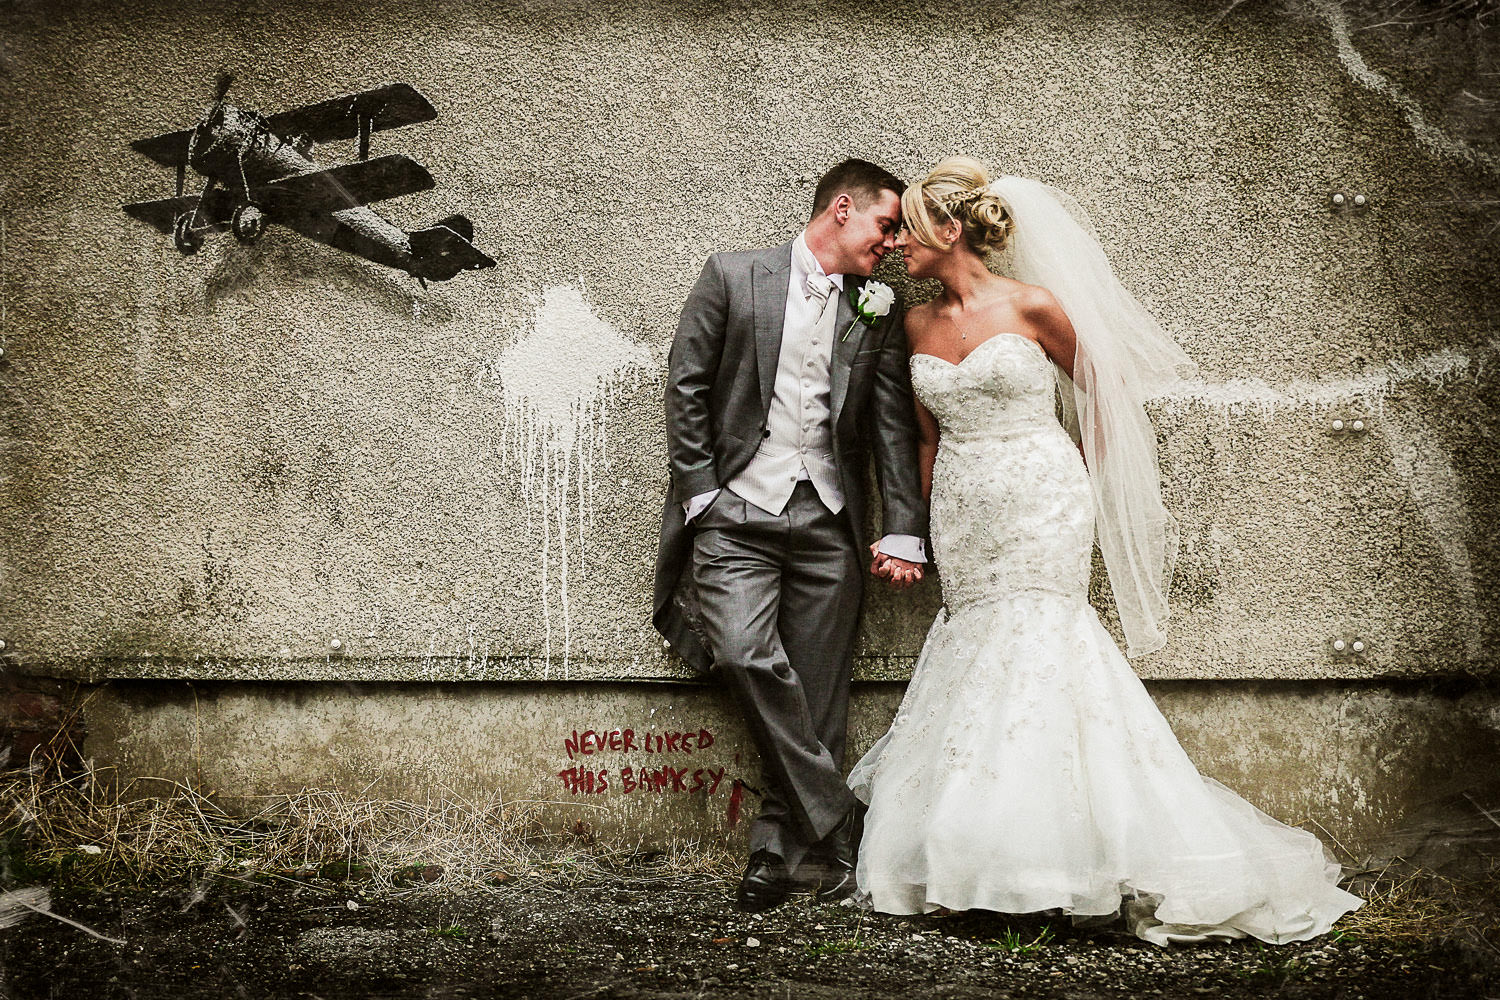 Bride and groom with graffiti Banksy wall wedding photographer Liverpool